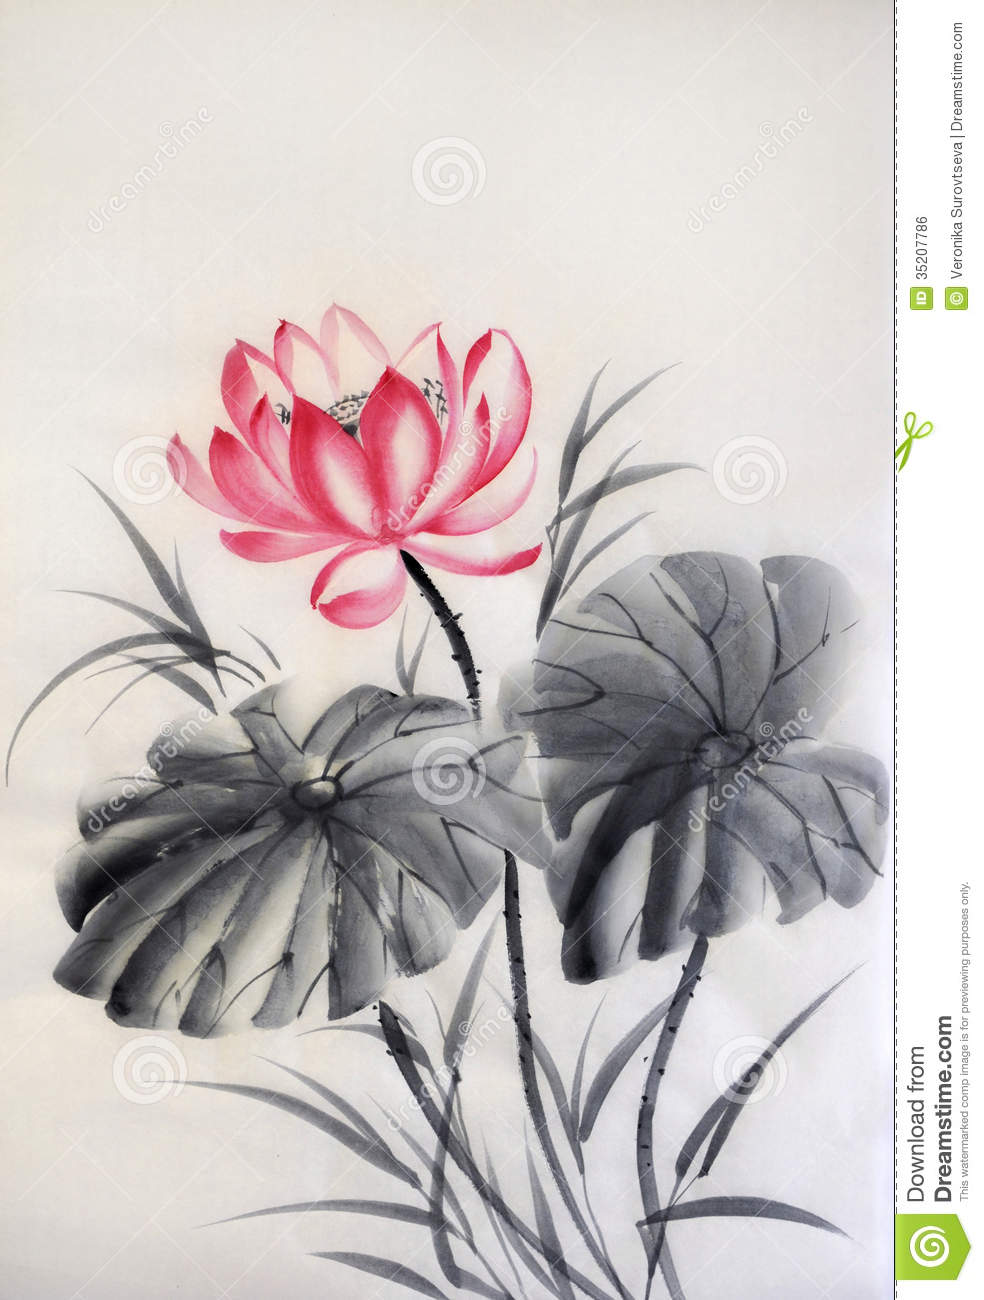 Image Gallery japanese lotus flower art